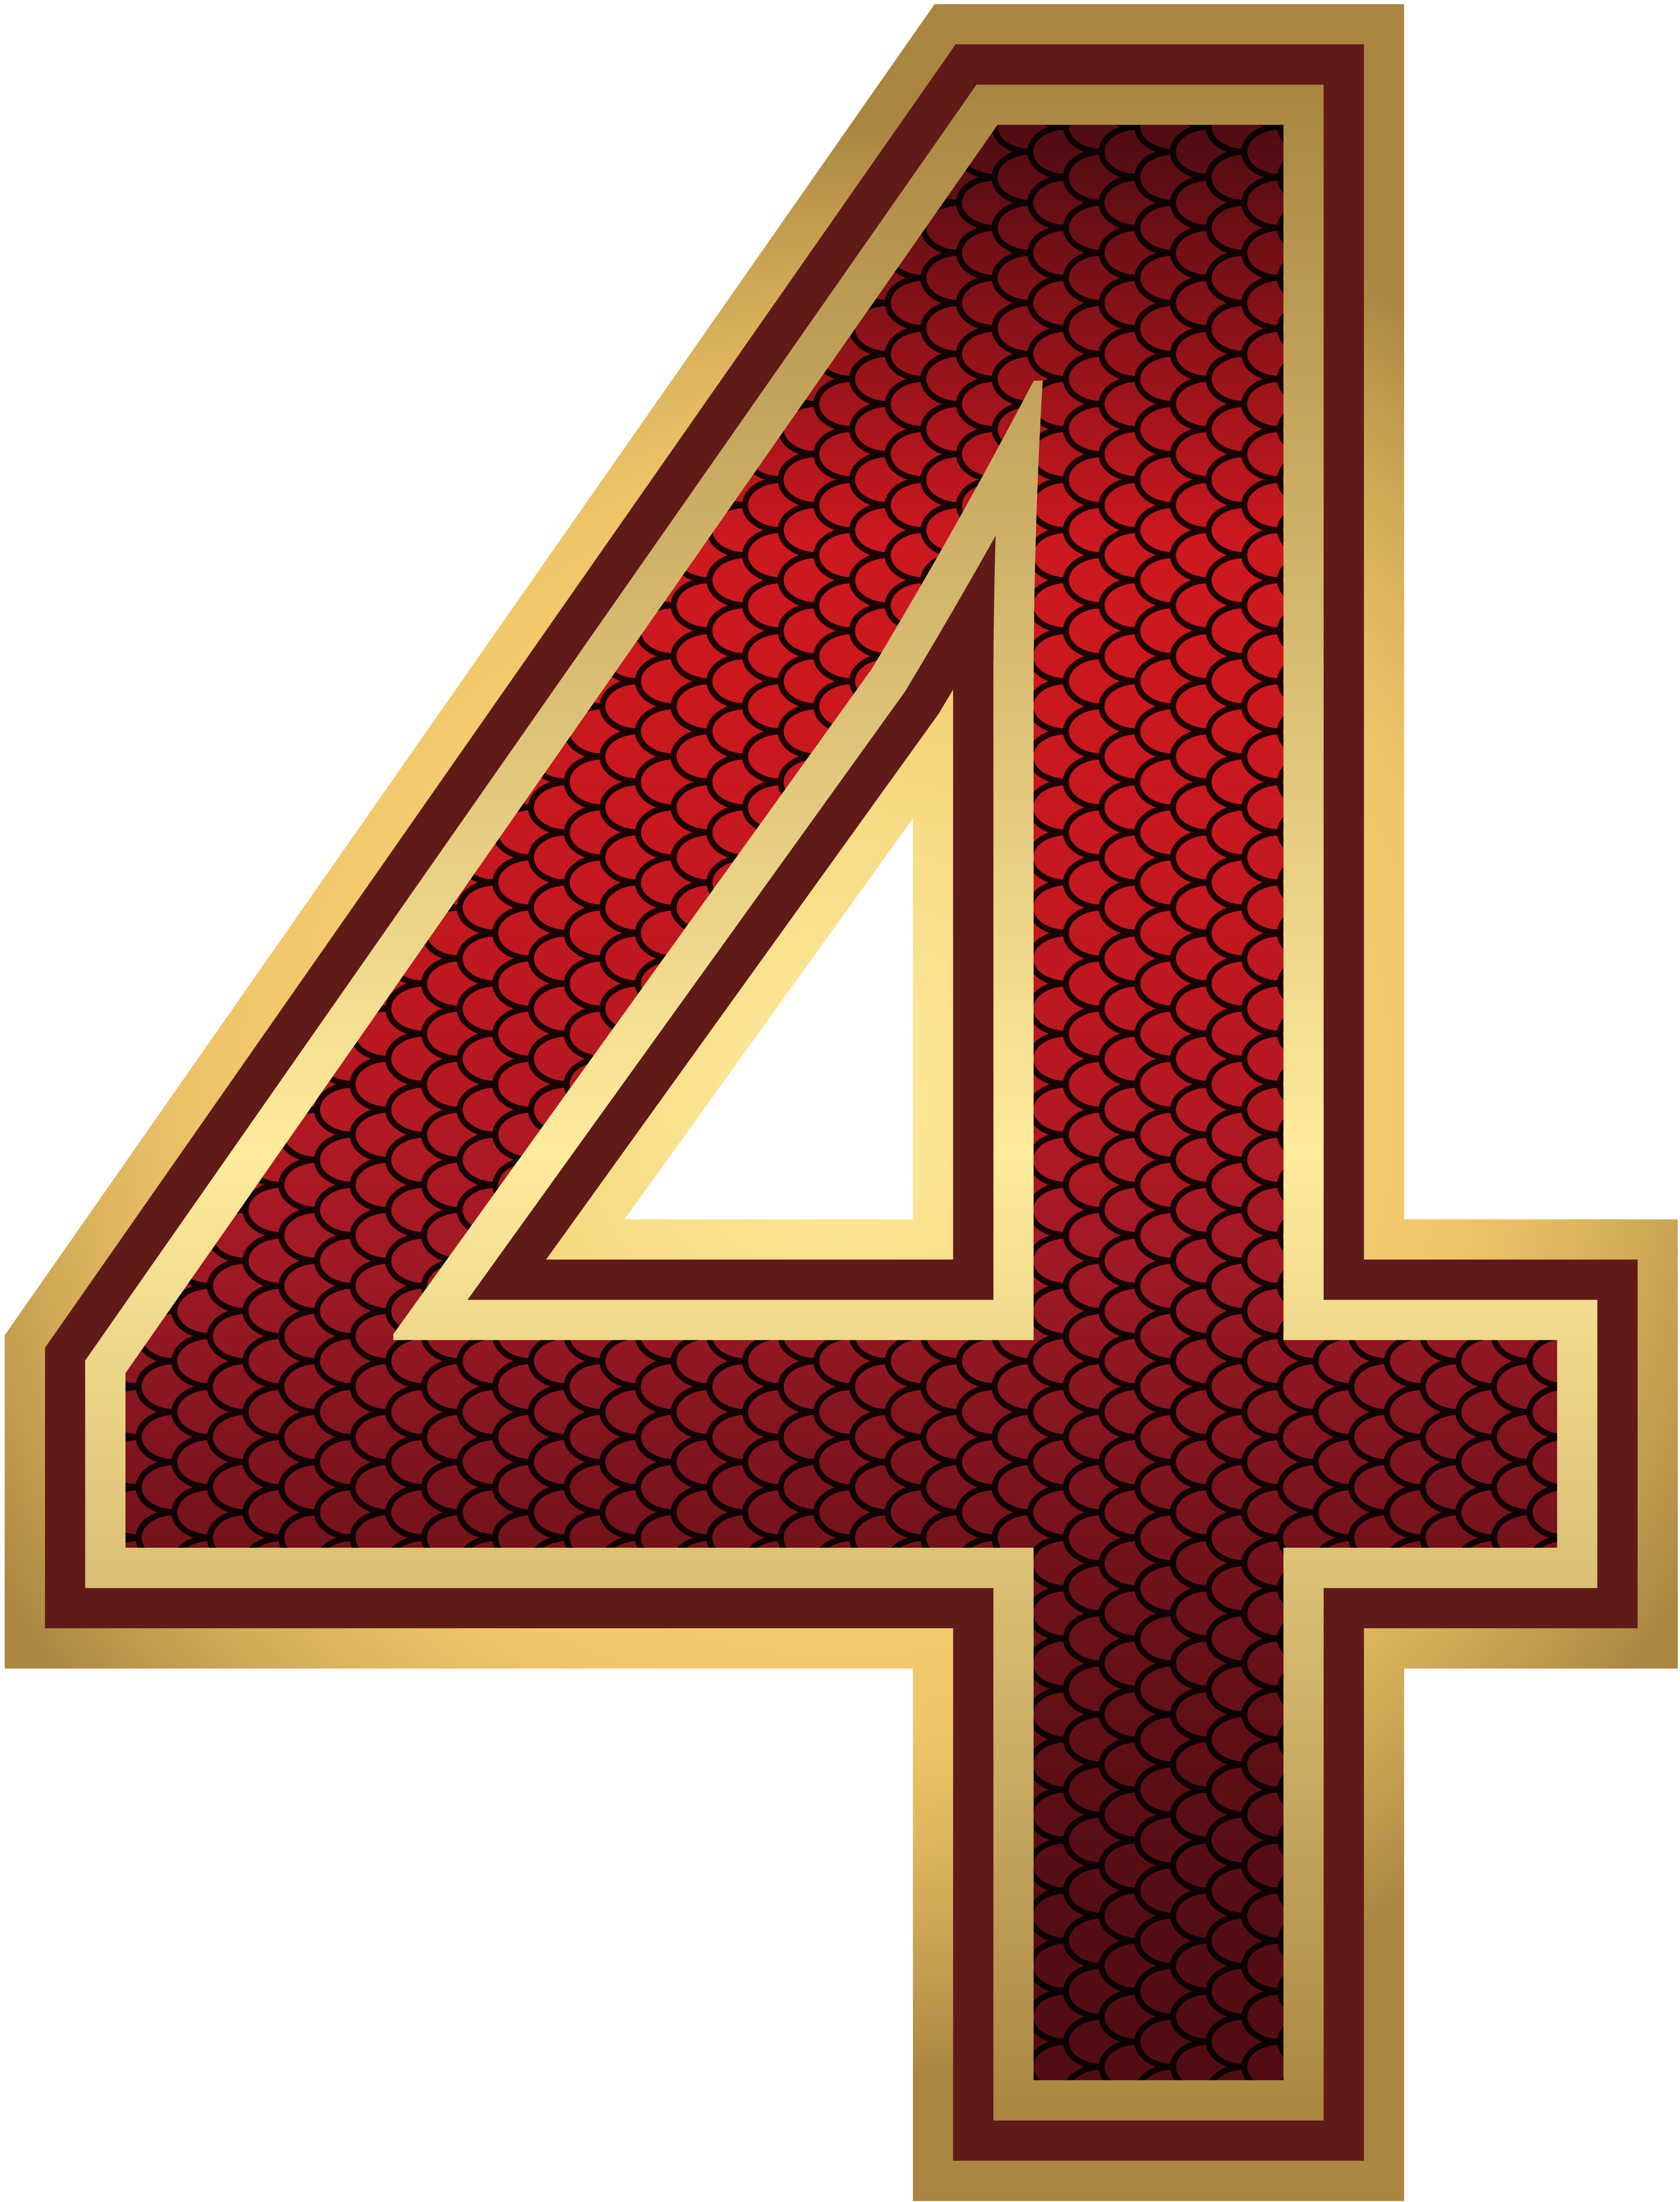 Red And Gold Number Four Png Image Gallery Yopriceville High Quality Images And Transparent Png Free Cl Red And Gold Alphabet Letters Design Free Clip Art